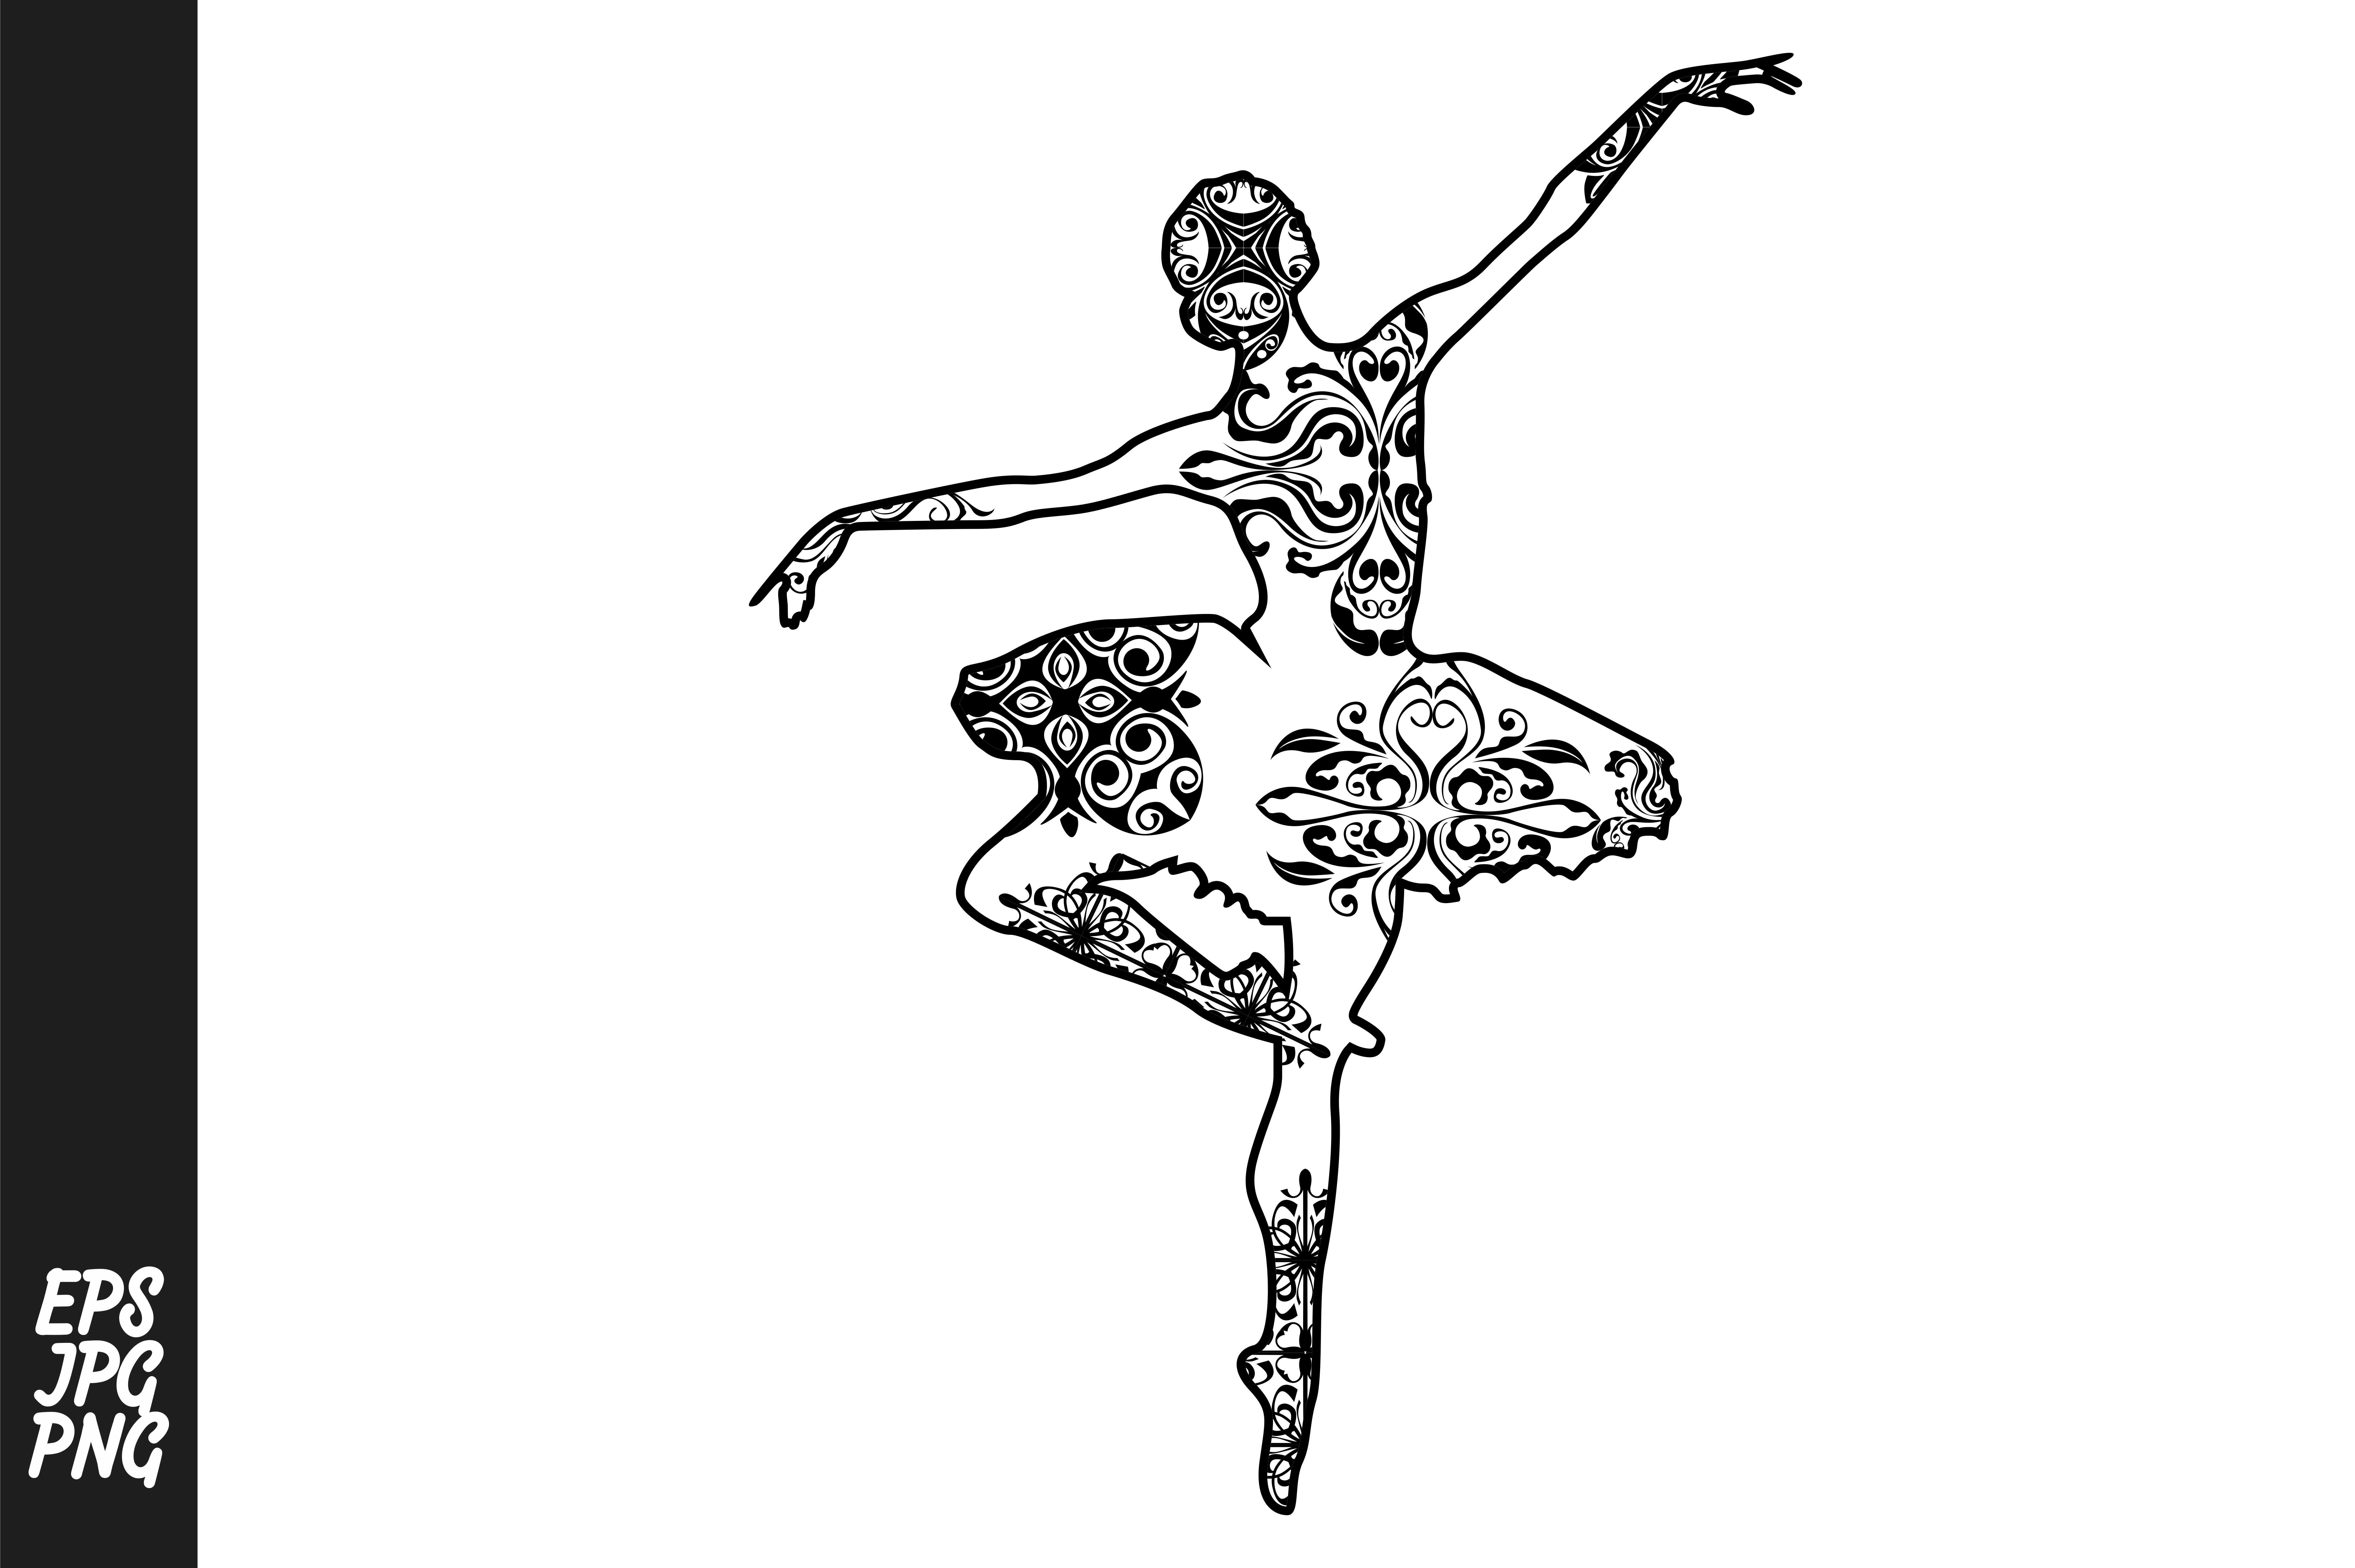 Download Free Ballet Dancer Mandala Line Art Style Graphic By Arief Sapta for Cricut Explore, Silhouette and other cutting machines.